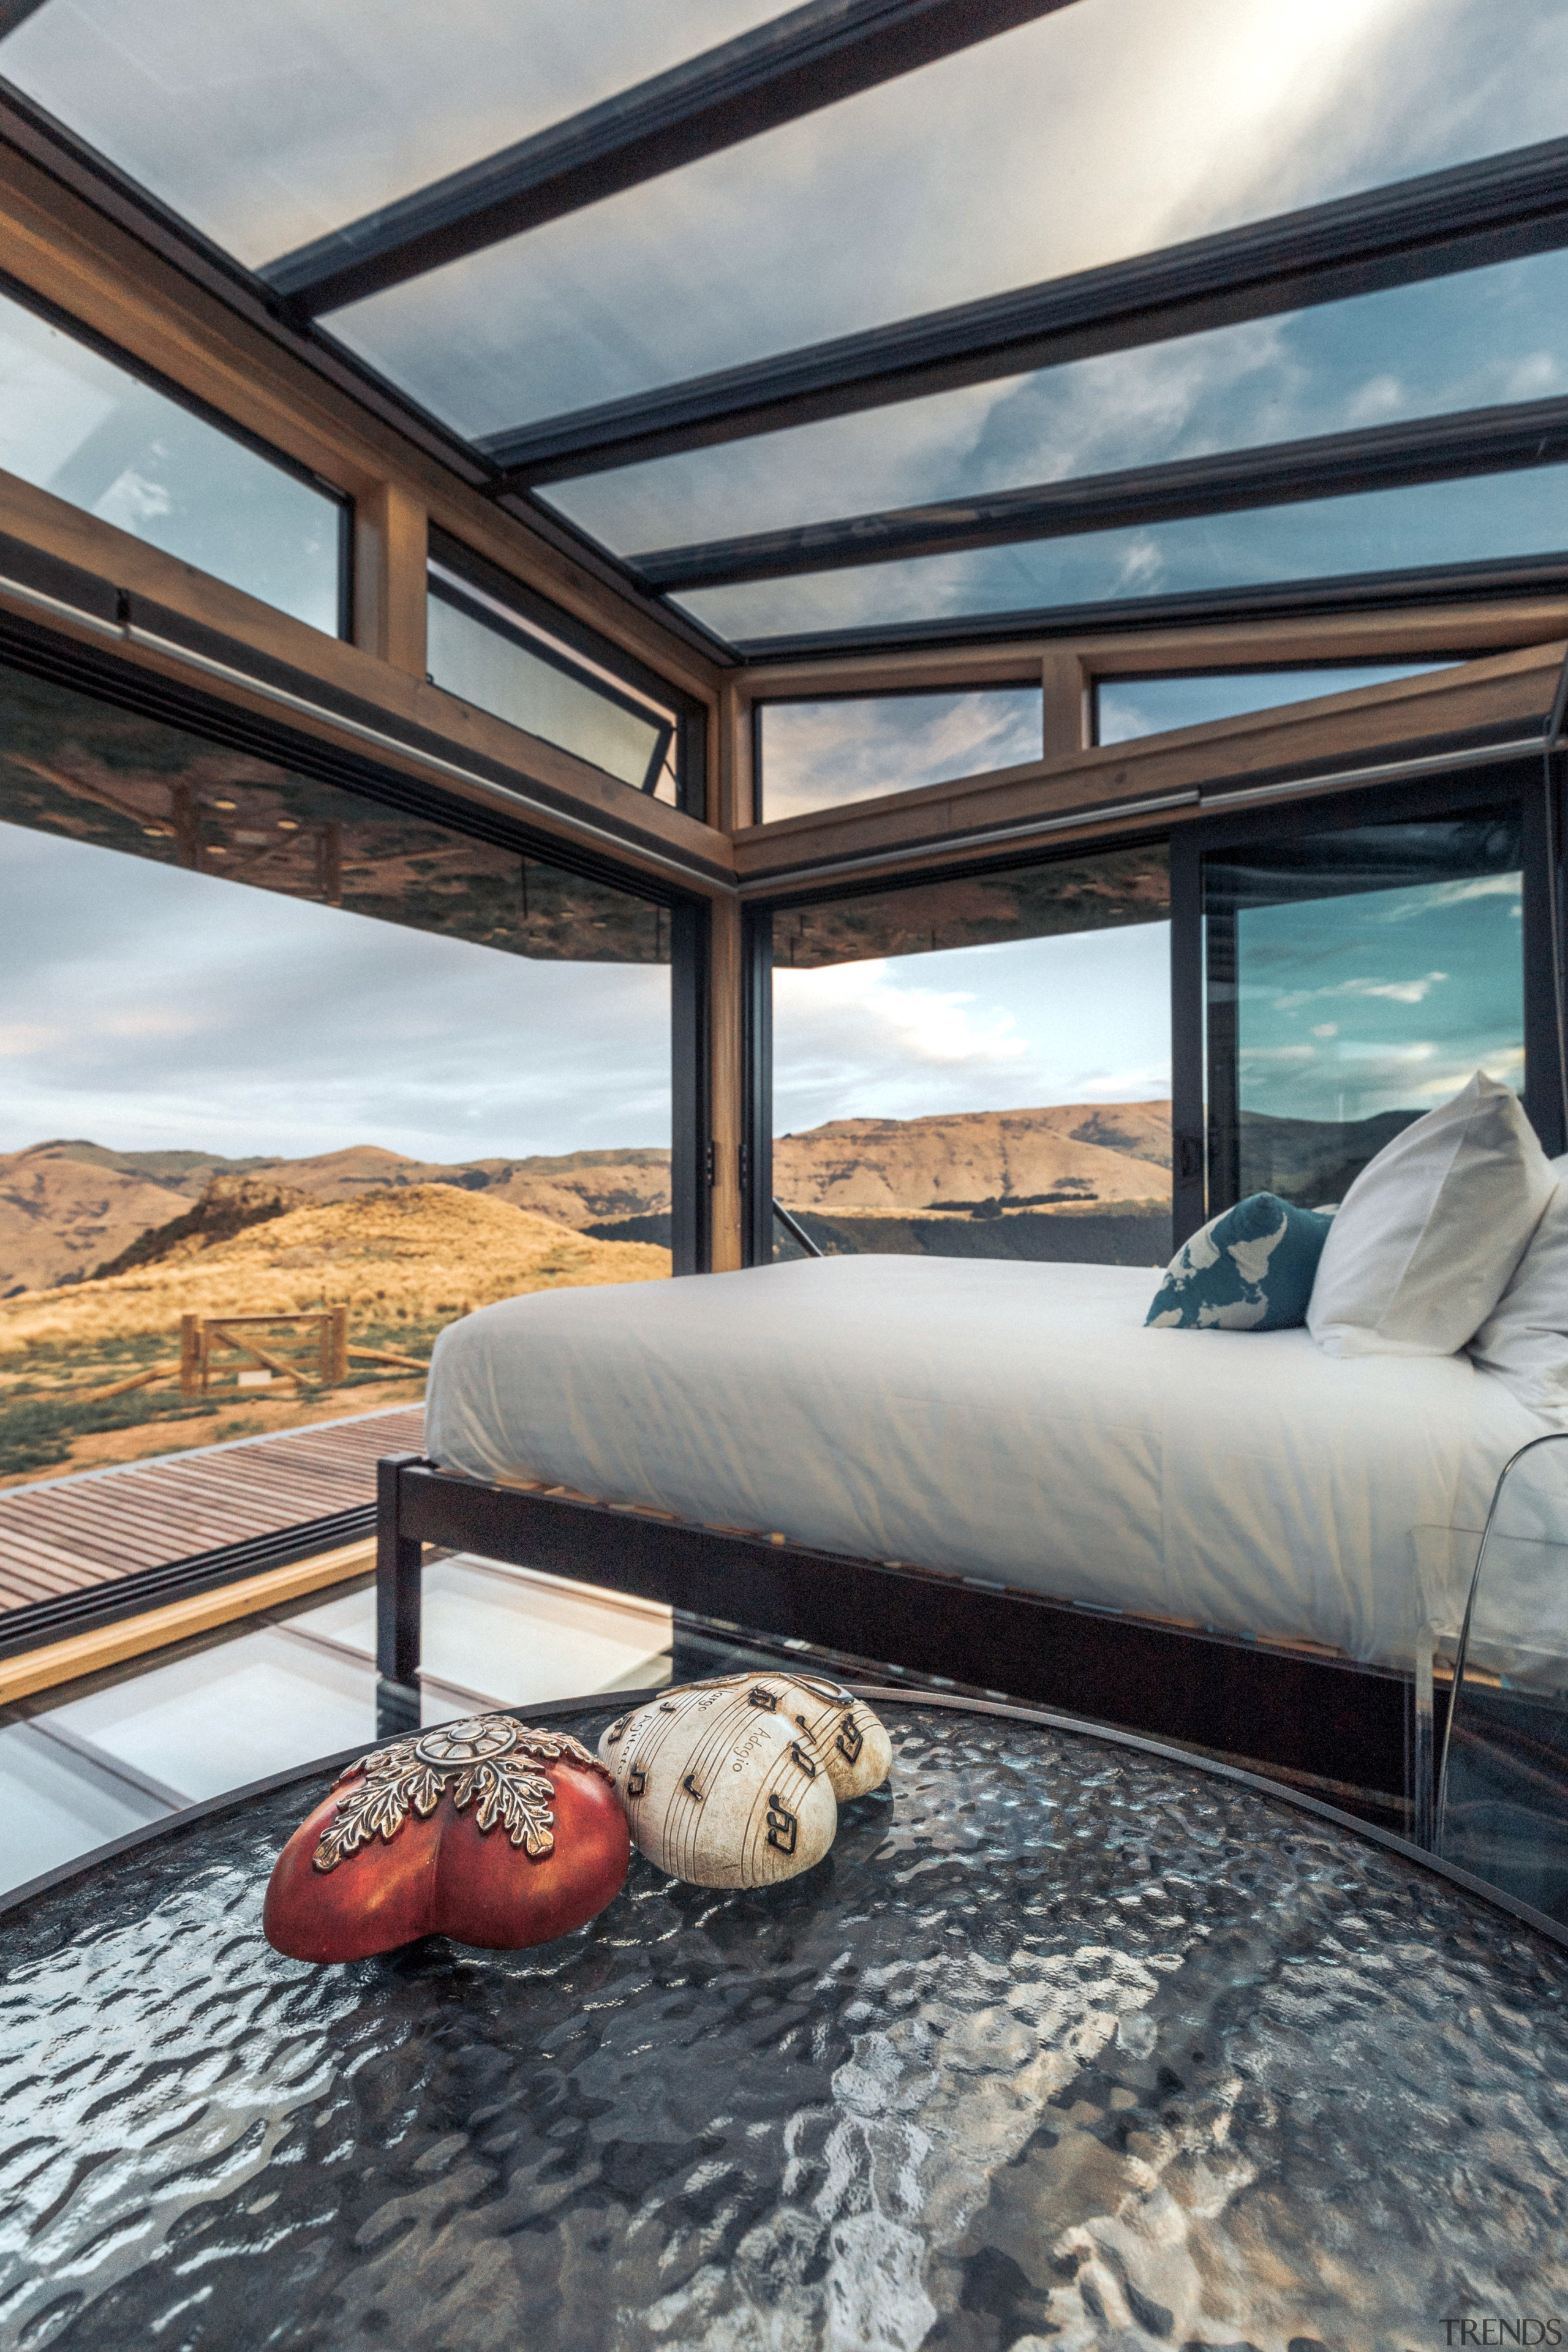 PurePod, New Zealand South Island, New Zealand - architecture, bed, bed frame, bedding, bedroom, building, ceiling, daylighting, floor, furniture, home, house, interior design, leisure, property, room, suite, gray, black